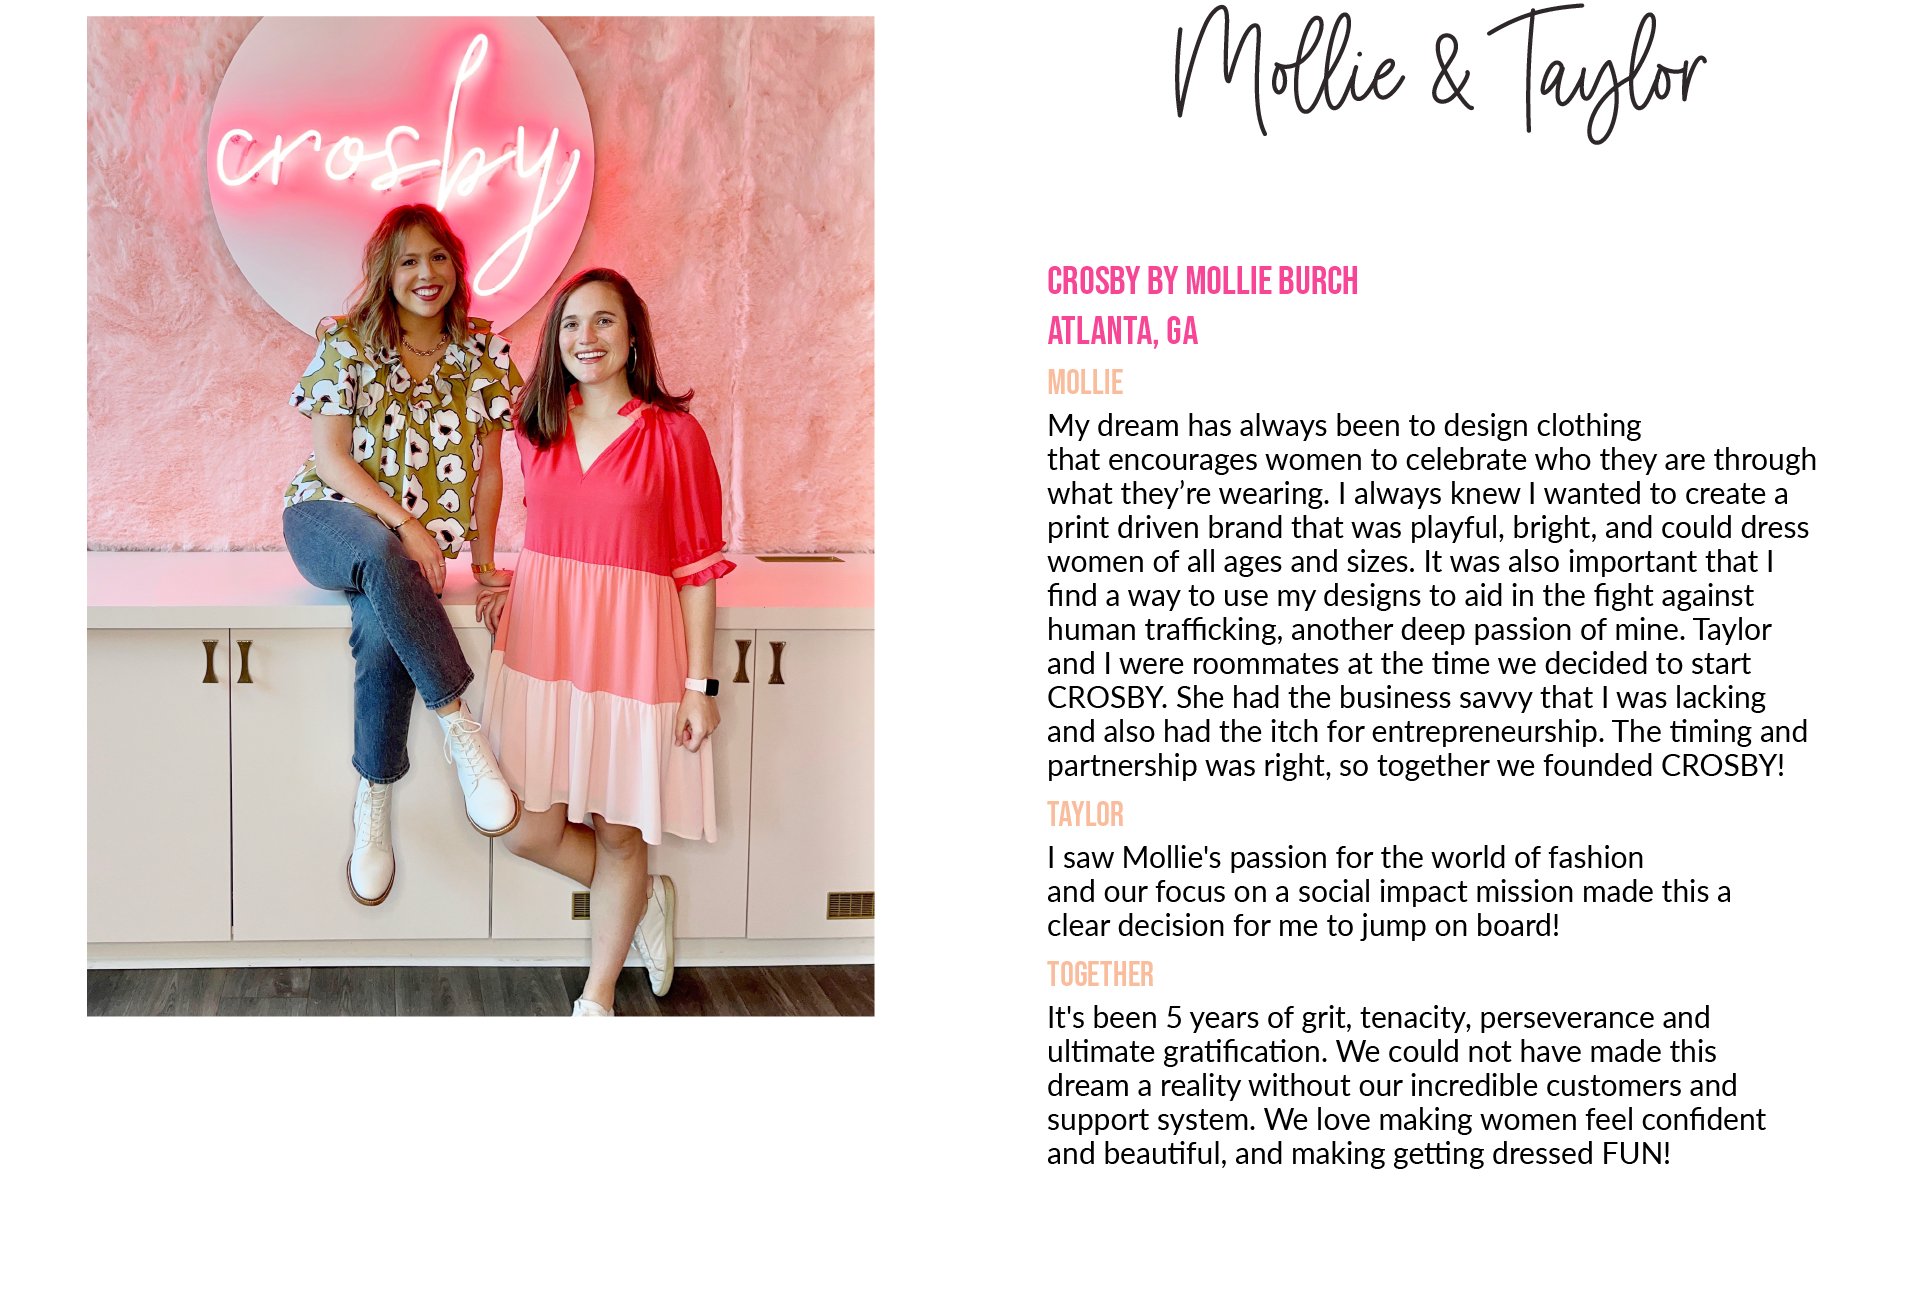 Mollie& TaylorCROSBY by Mollie Burch Atlanta, GA Mollie: My dream has always been to design clothing that encourages women to celebrate who they are through what they're wearing. I always knew I wanted to create a print driven brand that was playful, bright, and could dress women of all ages and sizes. It was also important that Ifind a way to use my designs to aid in the fight against human trafficking, another deep passion of mine. Taylor and I were roommates at the time we decided to start CROSBY. She had the business savvy that I was lacking and also had the itch for entrepreneurship. The timing and partnership was right, so together we founded CROSBY! Taylor: I saw Mollie's passion for the world of fashion and our focus on a social impact mission made this a clear decision for me to jump on board! Together: It's been 5 years of grit, tenacity, perseverance and ultimate gratification. We could not have made this dream a reality without our incredible customers and support system. We love making women feel confident and beautiful, and making getting dressed FUN!